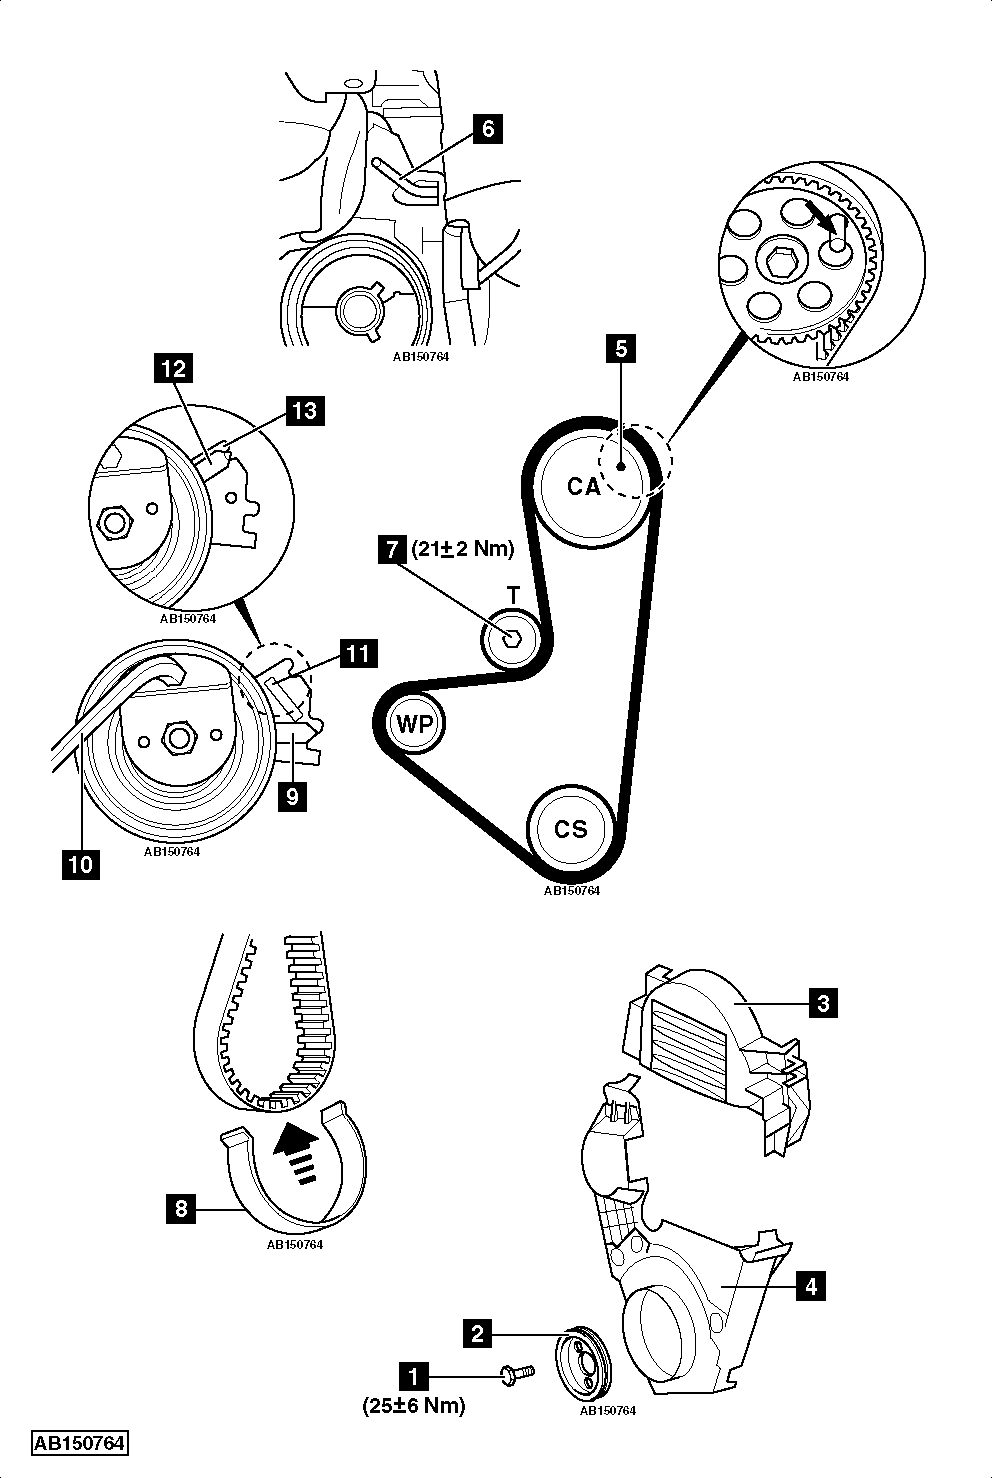 Citroen C3 Wiring Diagram Free Download 39 Images Diagrams How To Replace Timing Belt On 14 2009 Berlingo Alternator Efcaviation